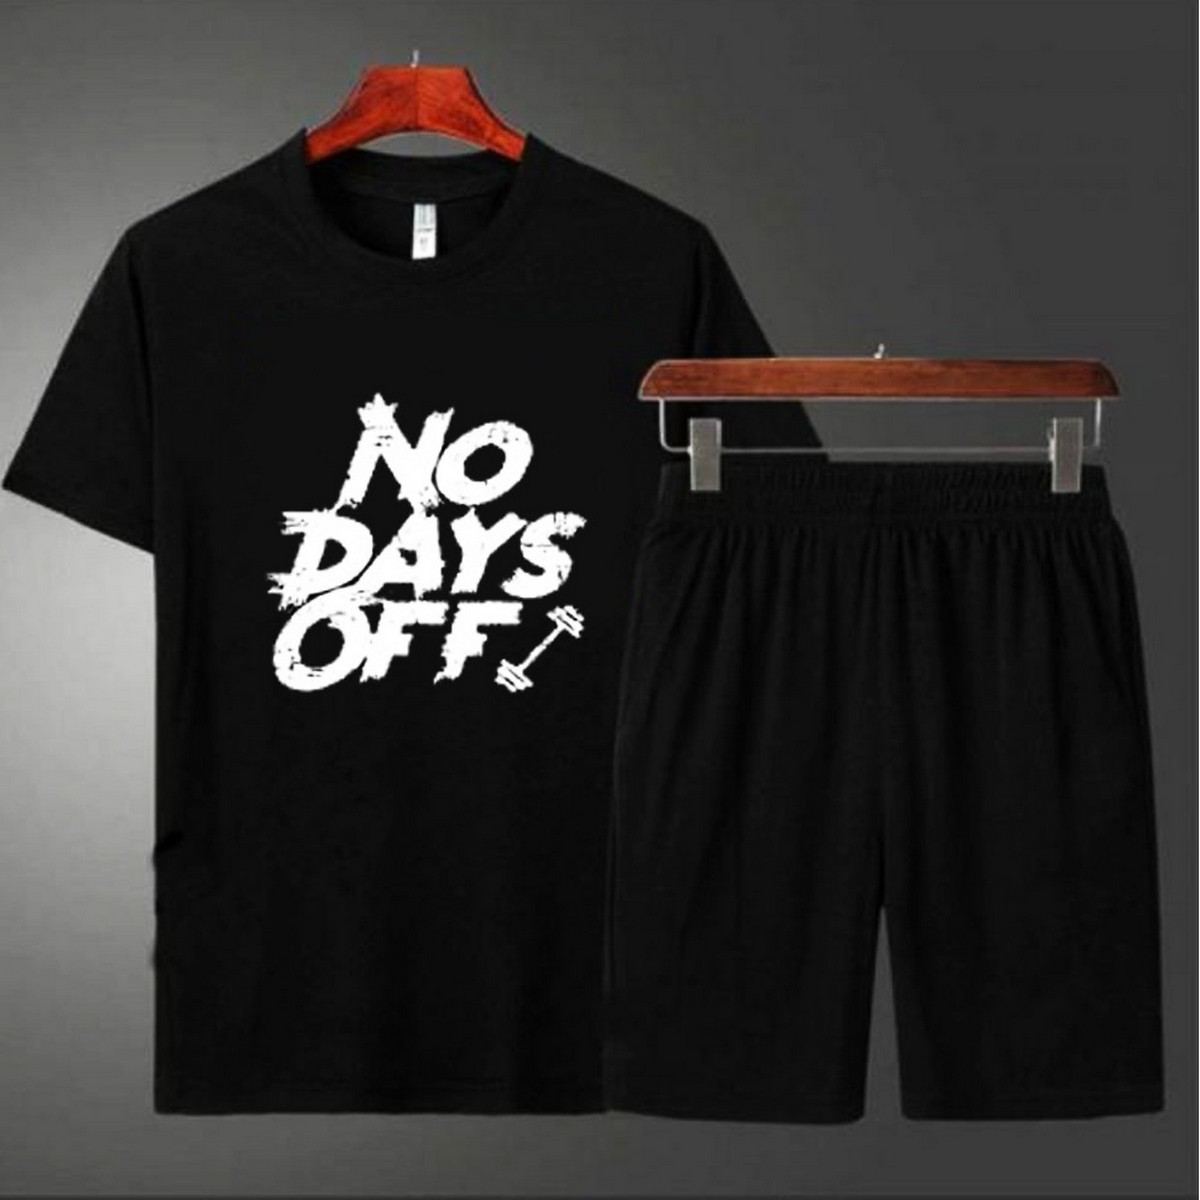 No Days Off Printed Black Tshirt Casual Boxer Shorts Summer Wear Tees Best Quality Pack of 2 T shirt & short For Men